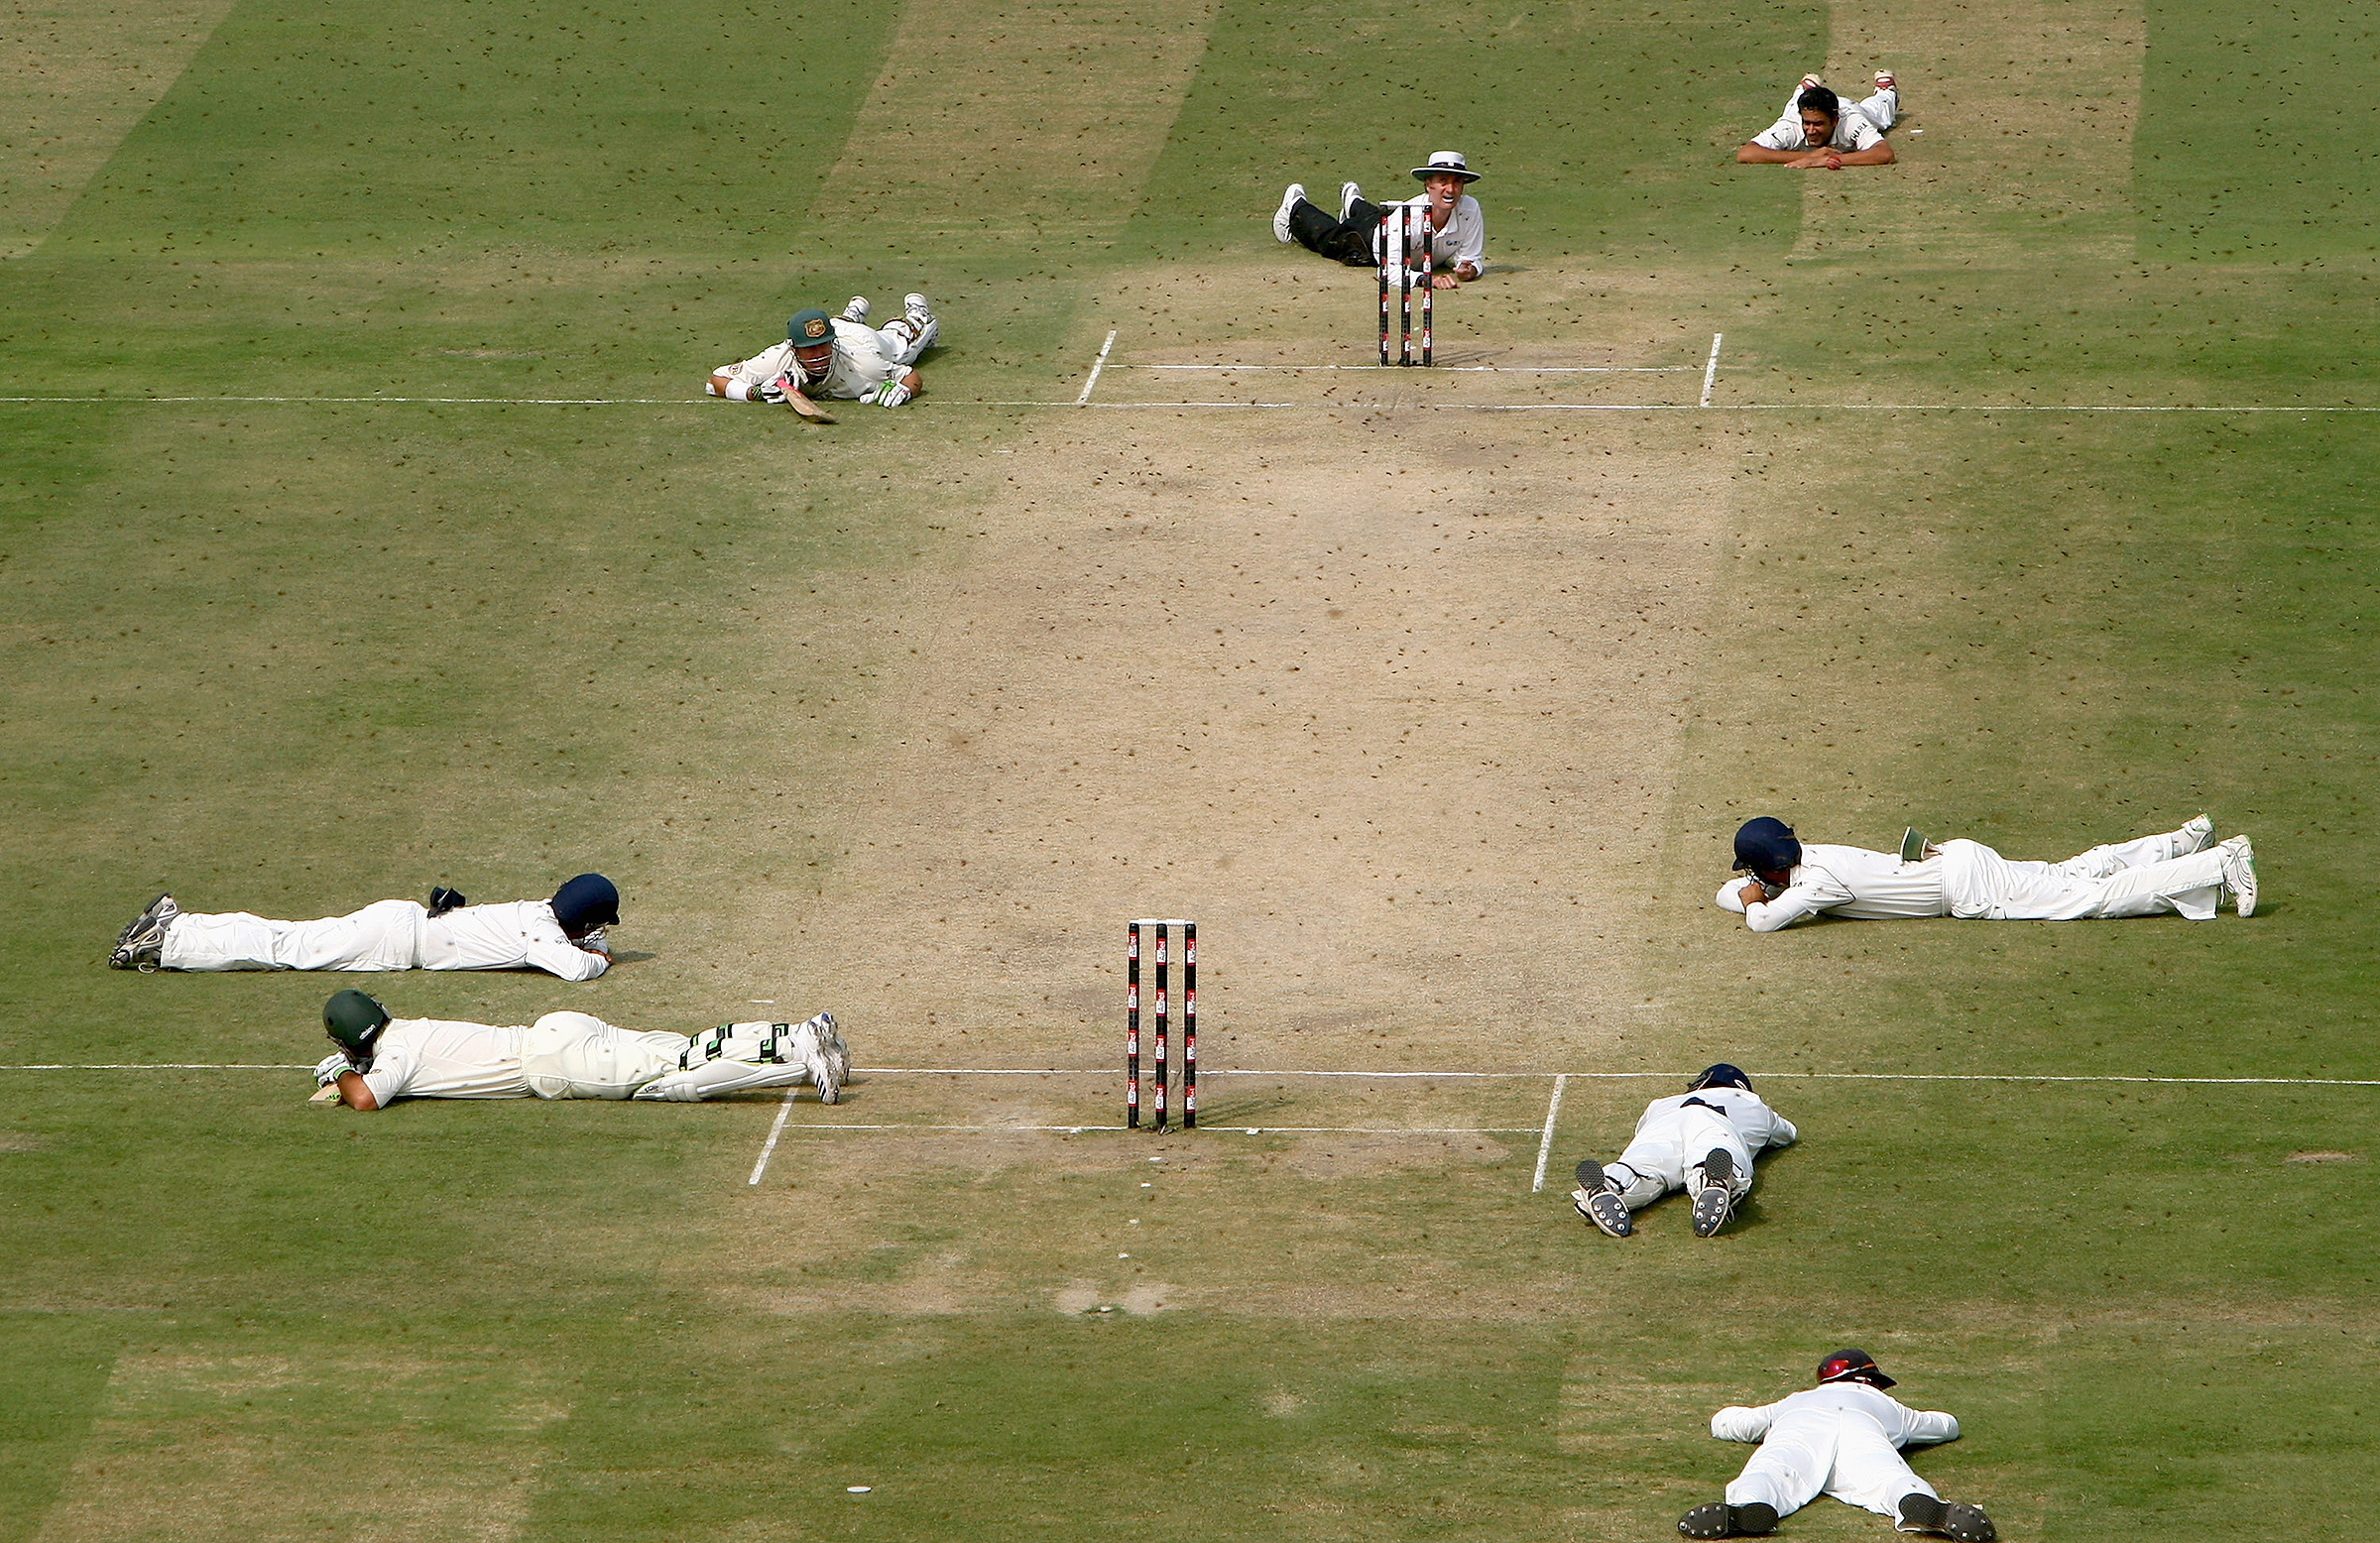 Australia's 2008 Test against India in Delhi was famously halted by a swarm of bees // Getty